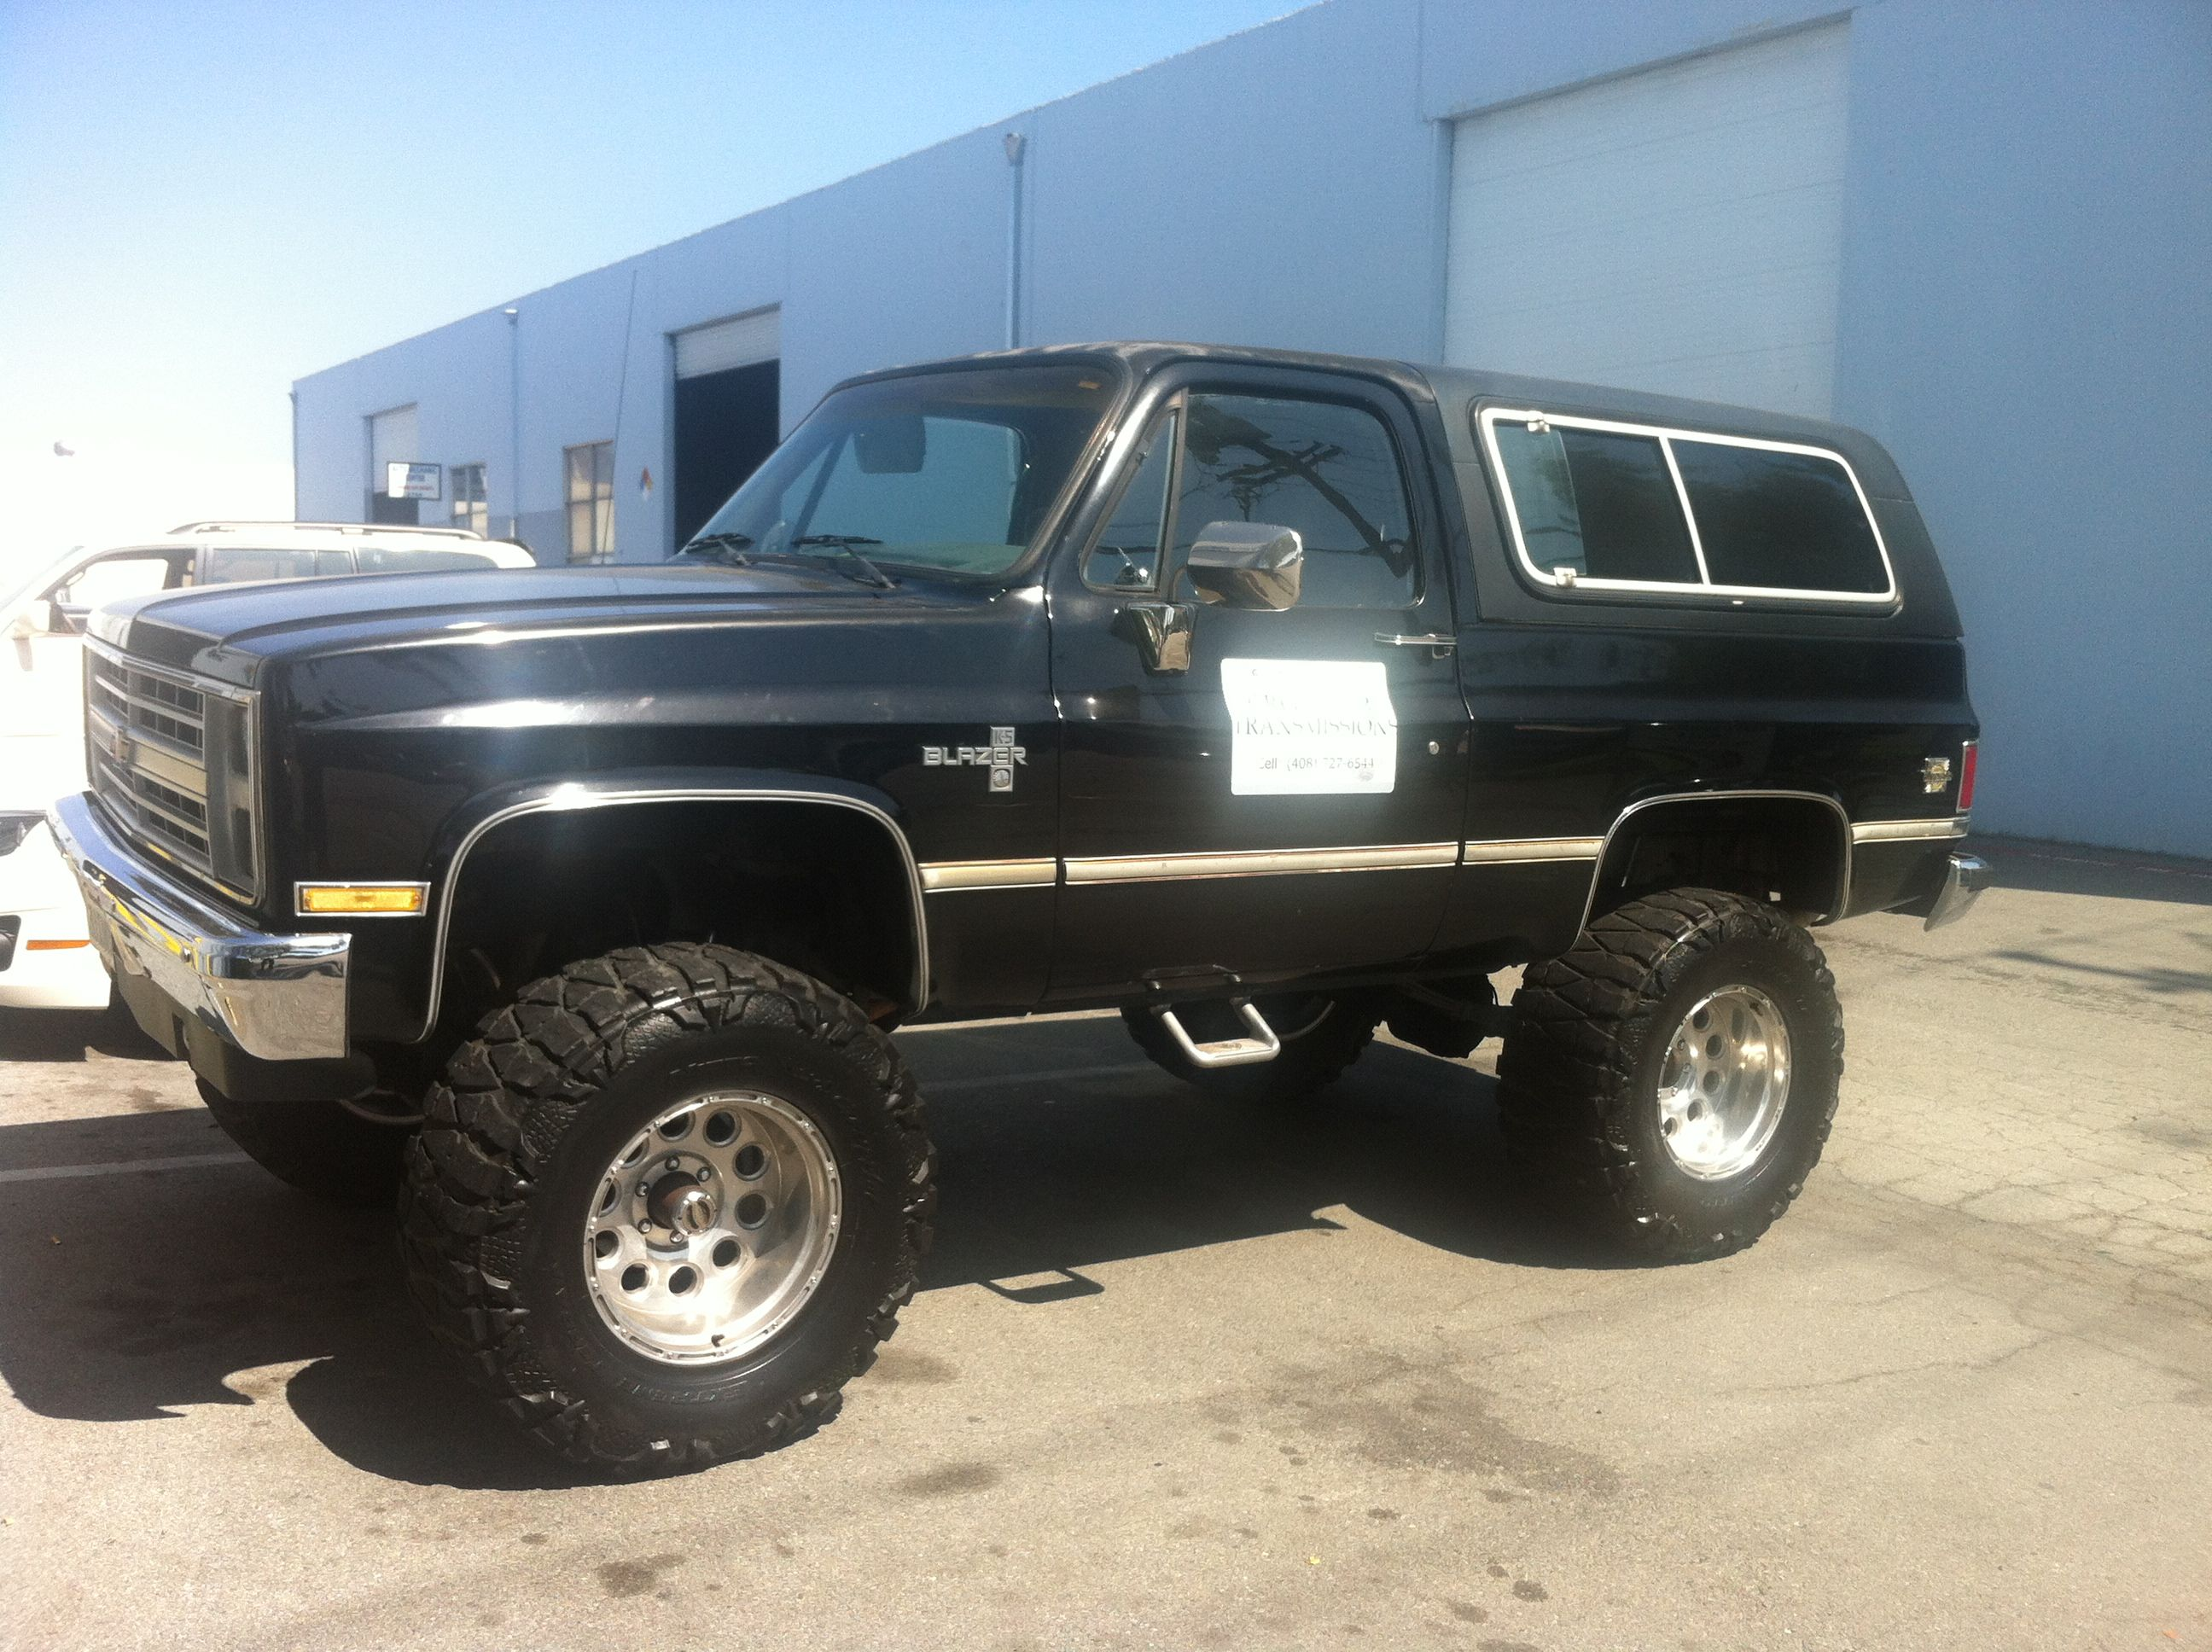 1987 chevy blazer cars pinterest. Black Bedroom Furniture Sets. Home Design Ideas